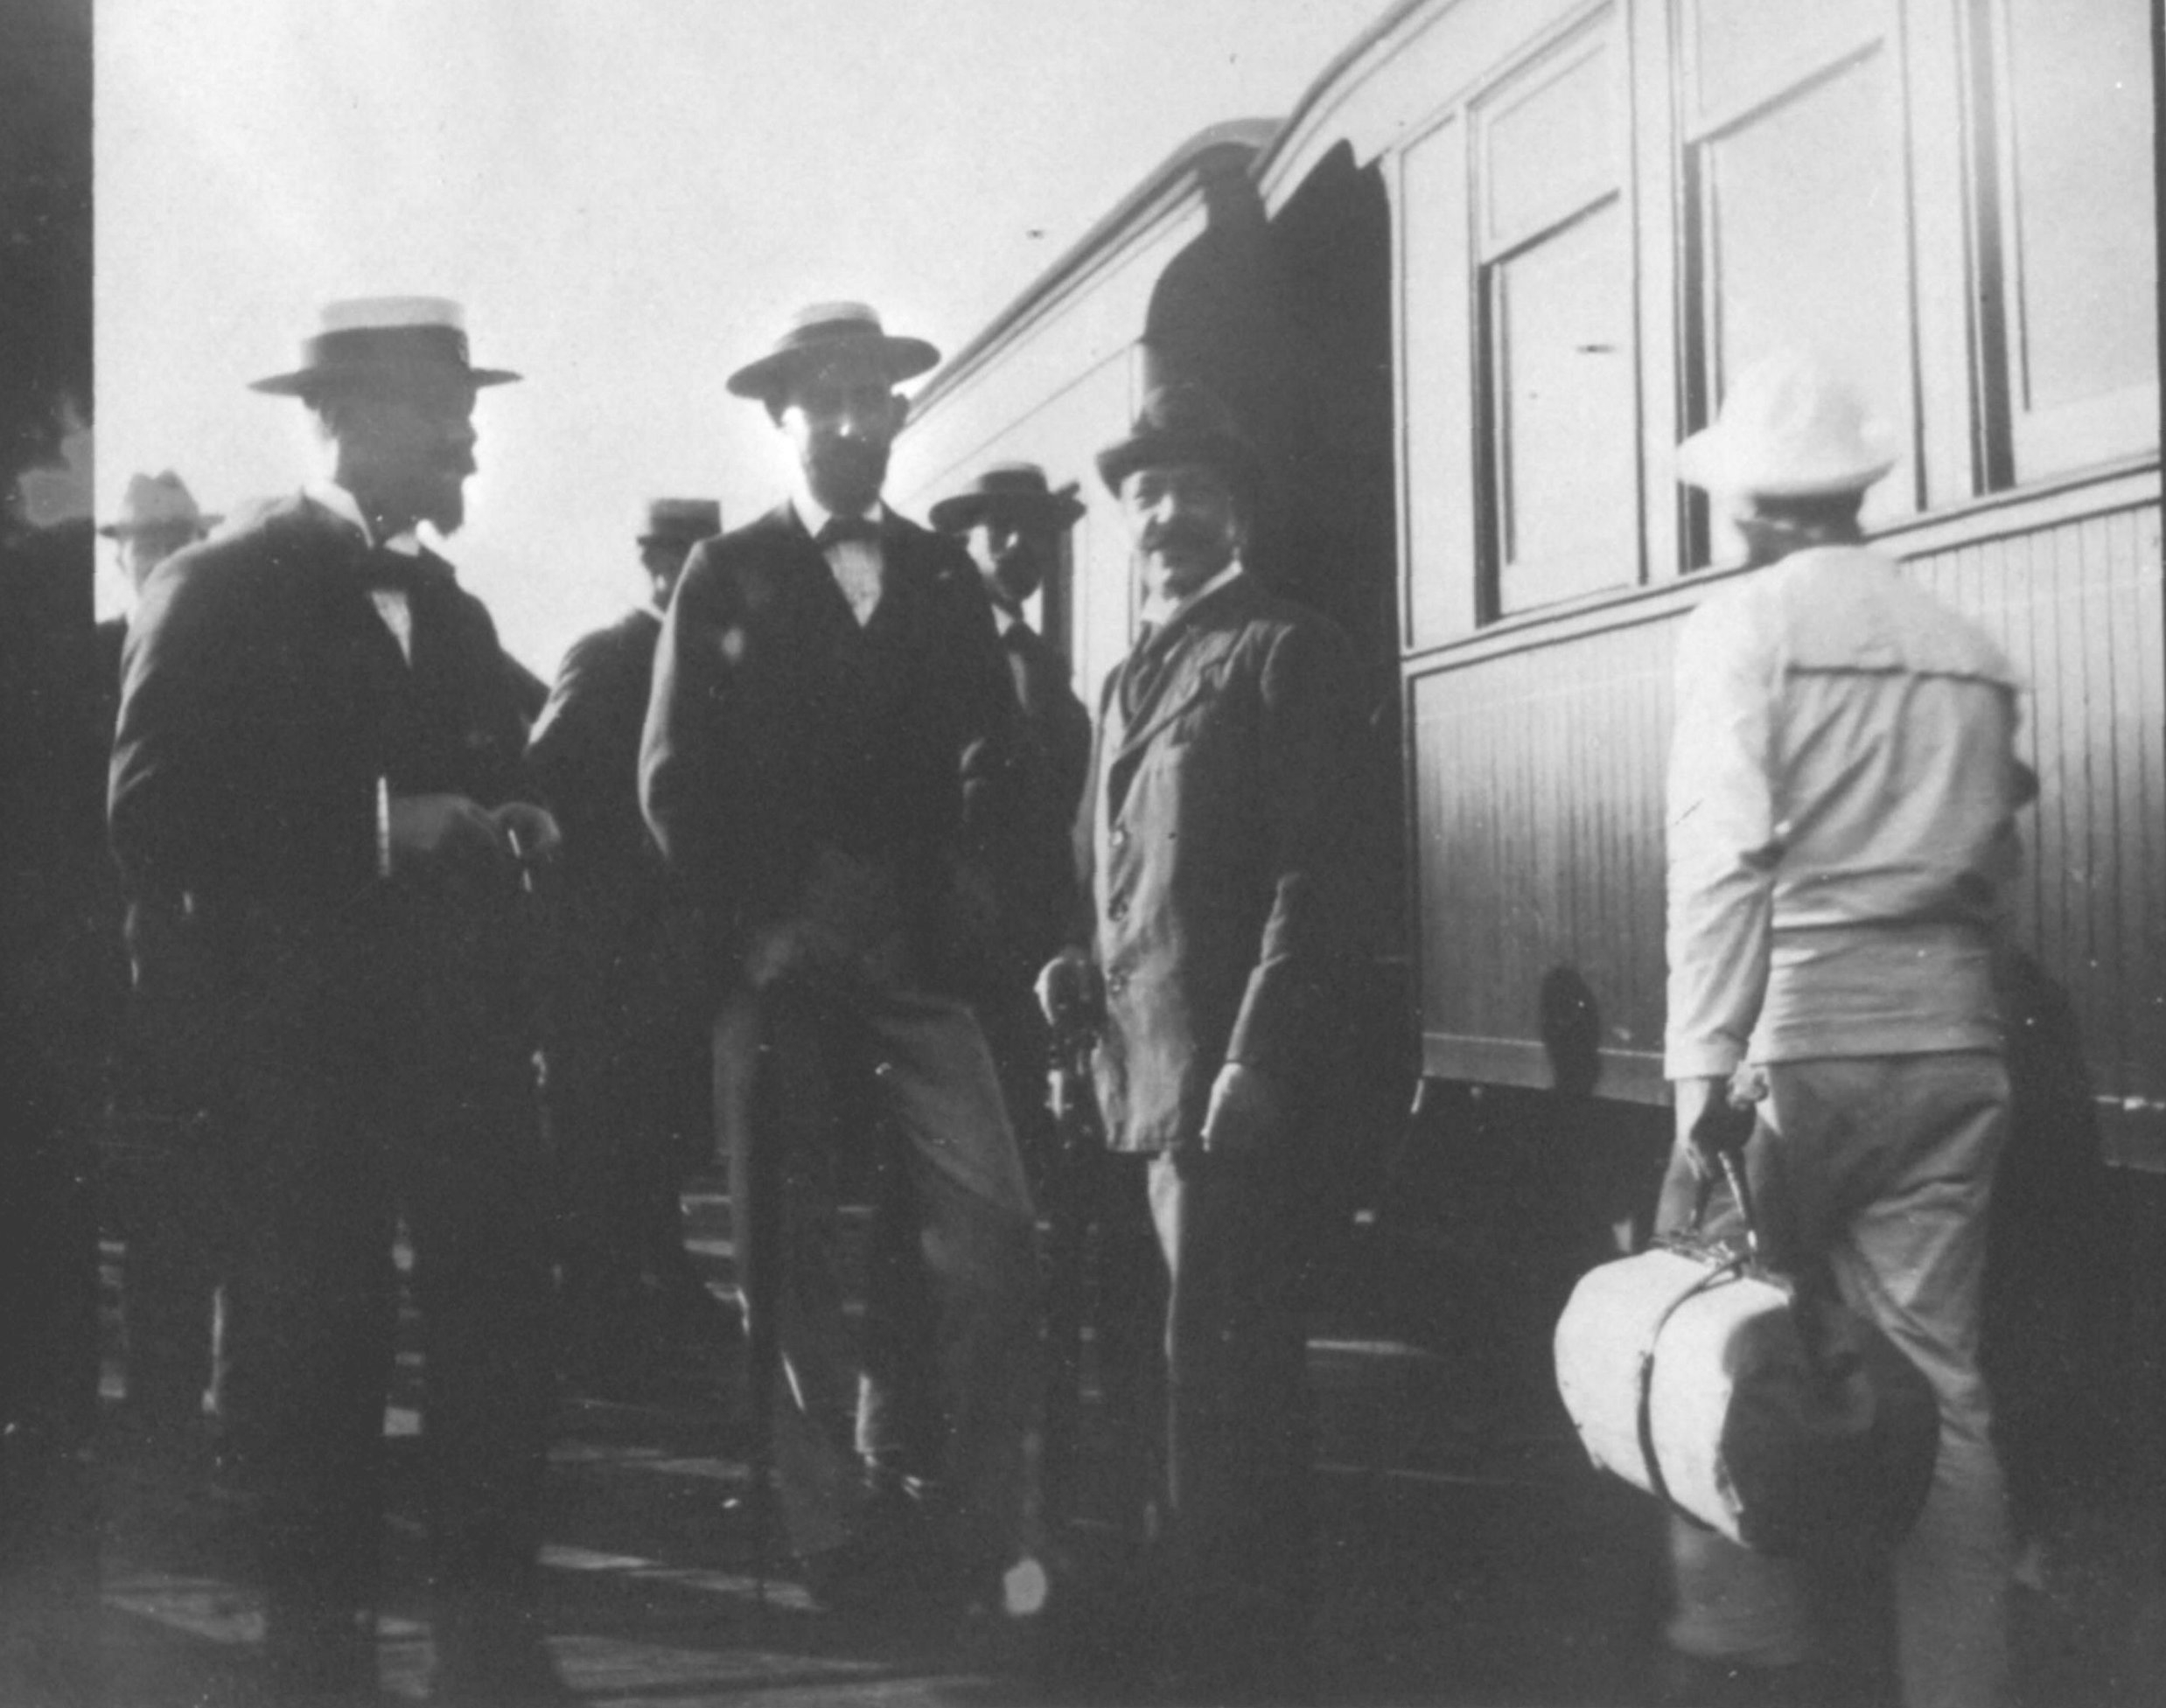 People boarding the Baltimore &Annapolis Railroad at Bladen Street Station. Annapolis, Maryland. Circa 1895. Source: Maryland State Archives.